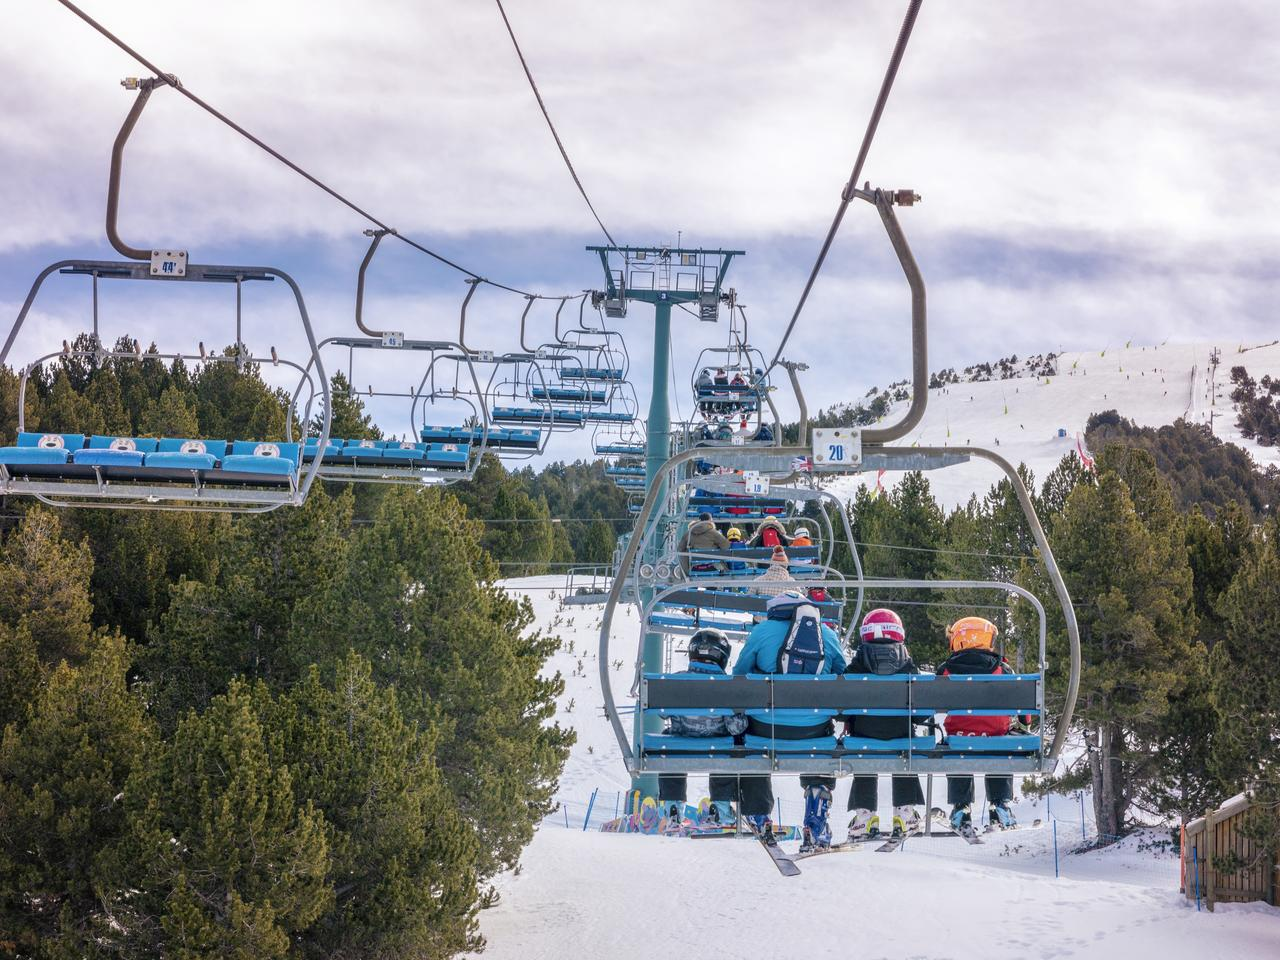 10 February 2019 - El Tarter, Andorra. Picture of skiers using chairlifts in the ski resort of El Tarter. Pinewood forest in the snowy mountains.